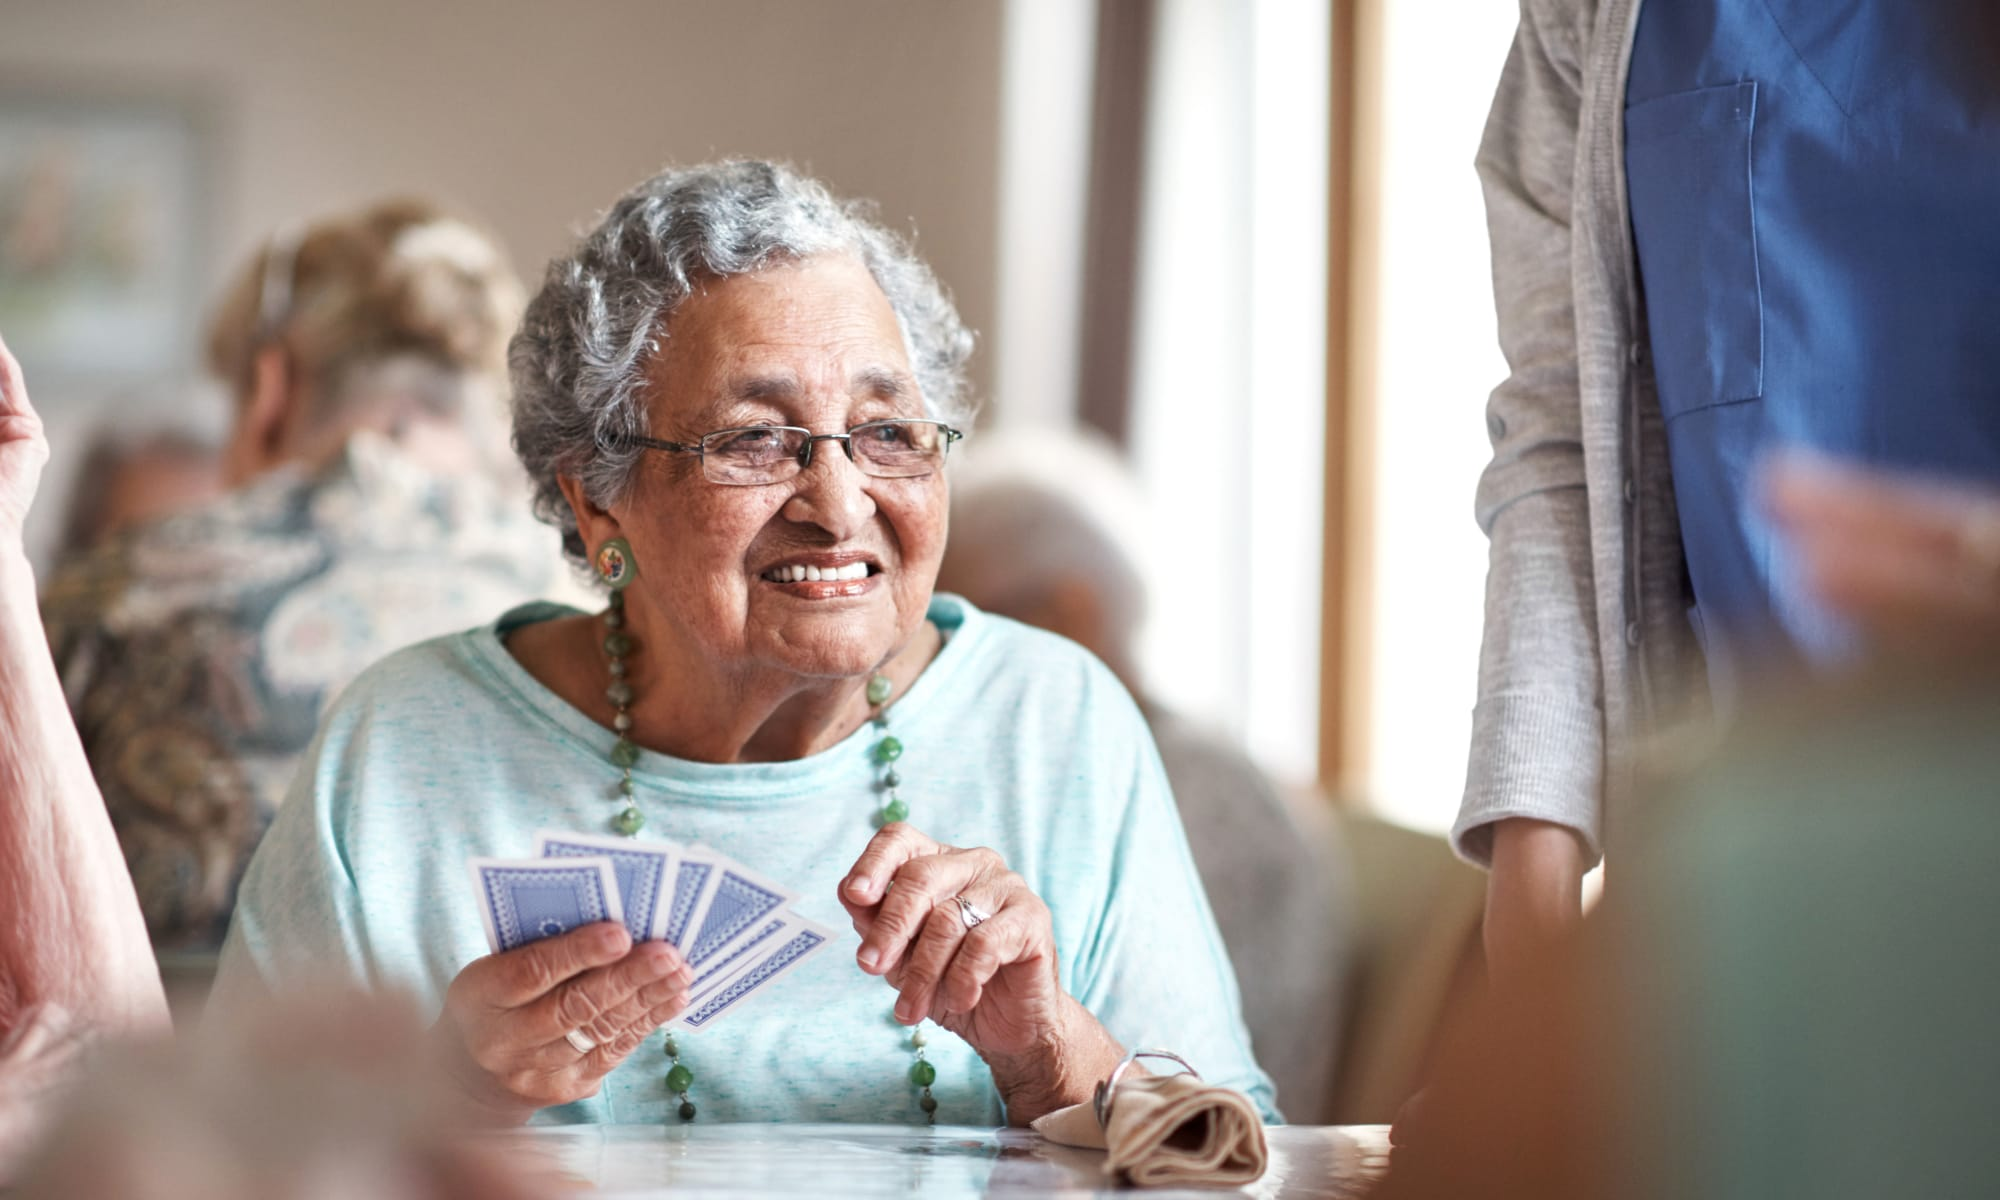 Resident playing cards at a Retirement Center Management community